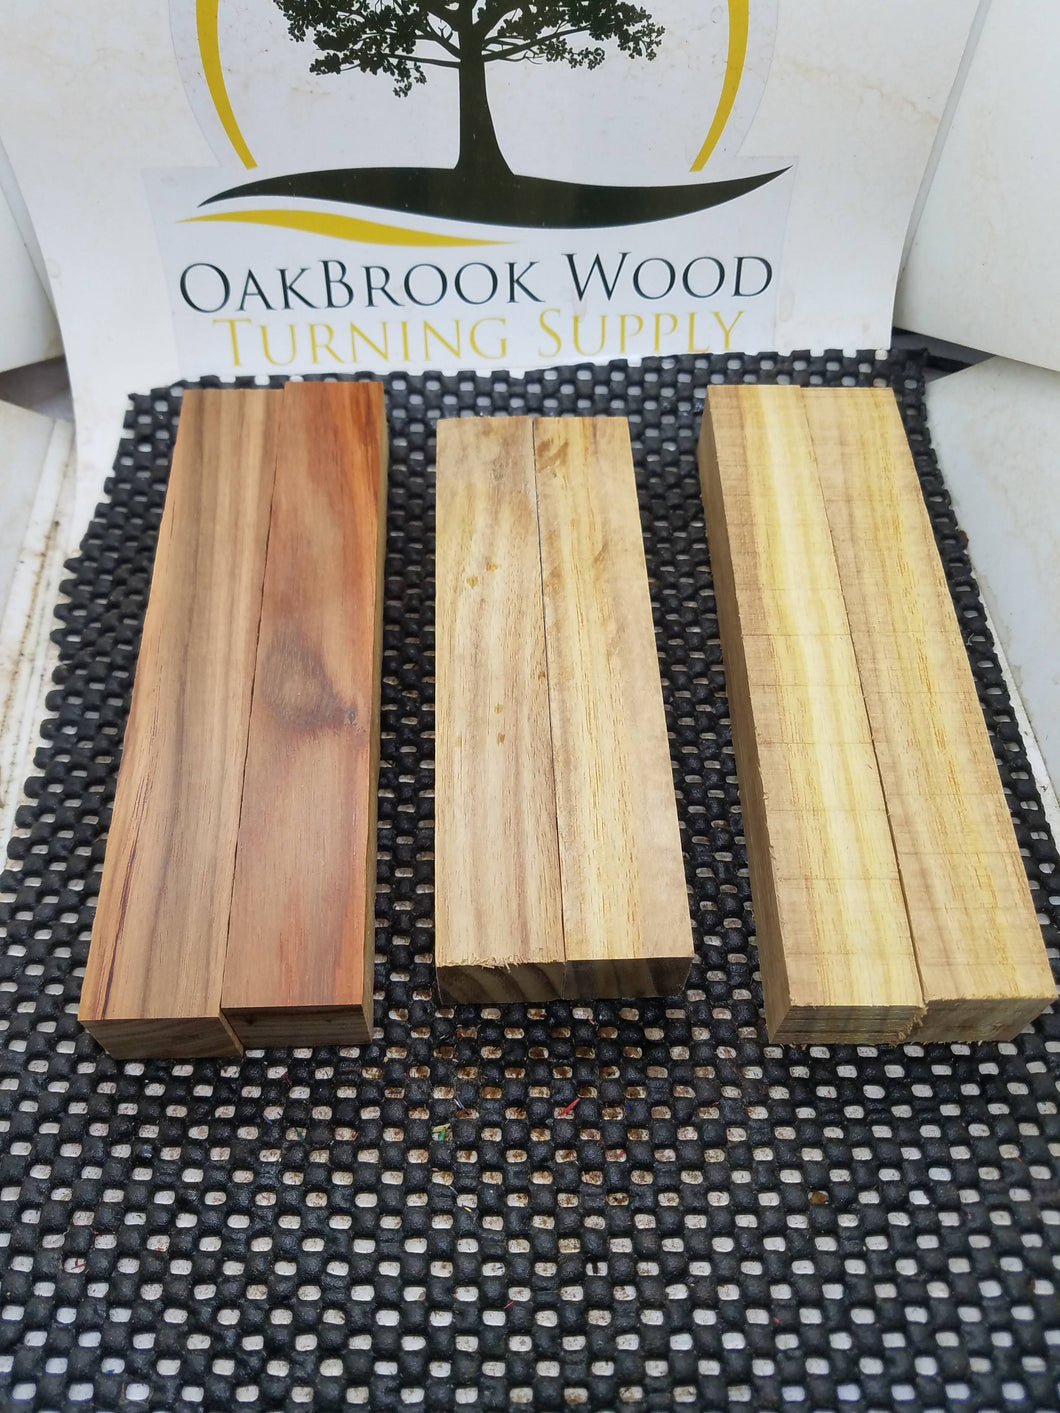 Canary Wood Pen Blank - Oakbrook Wood Turning Supply